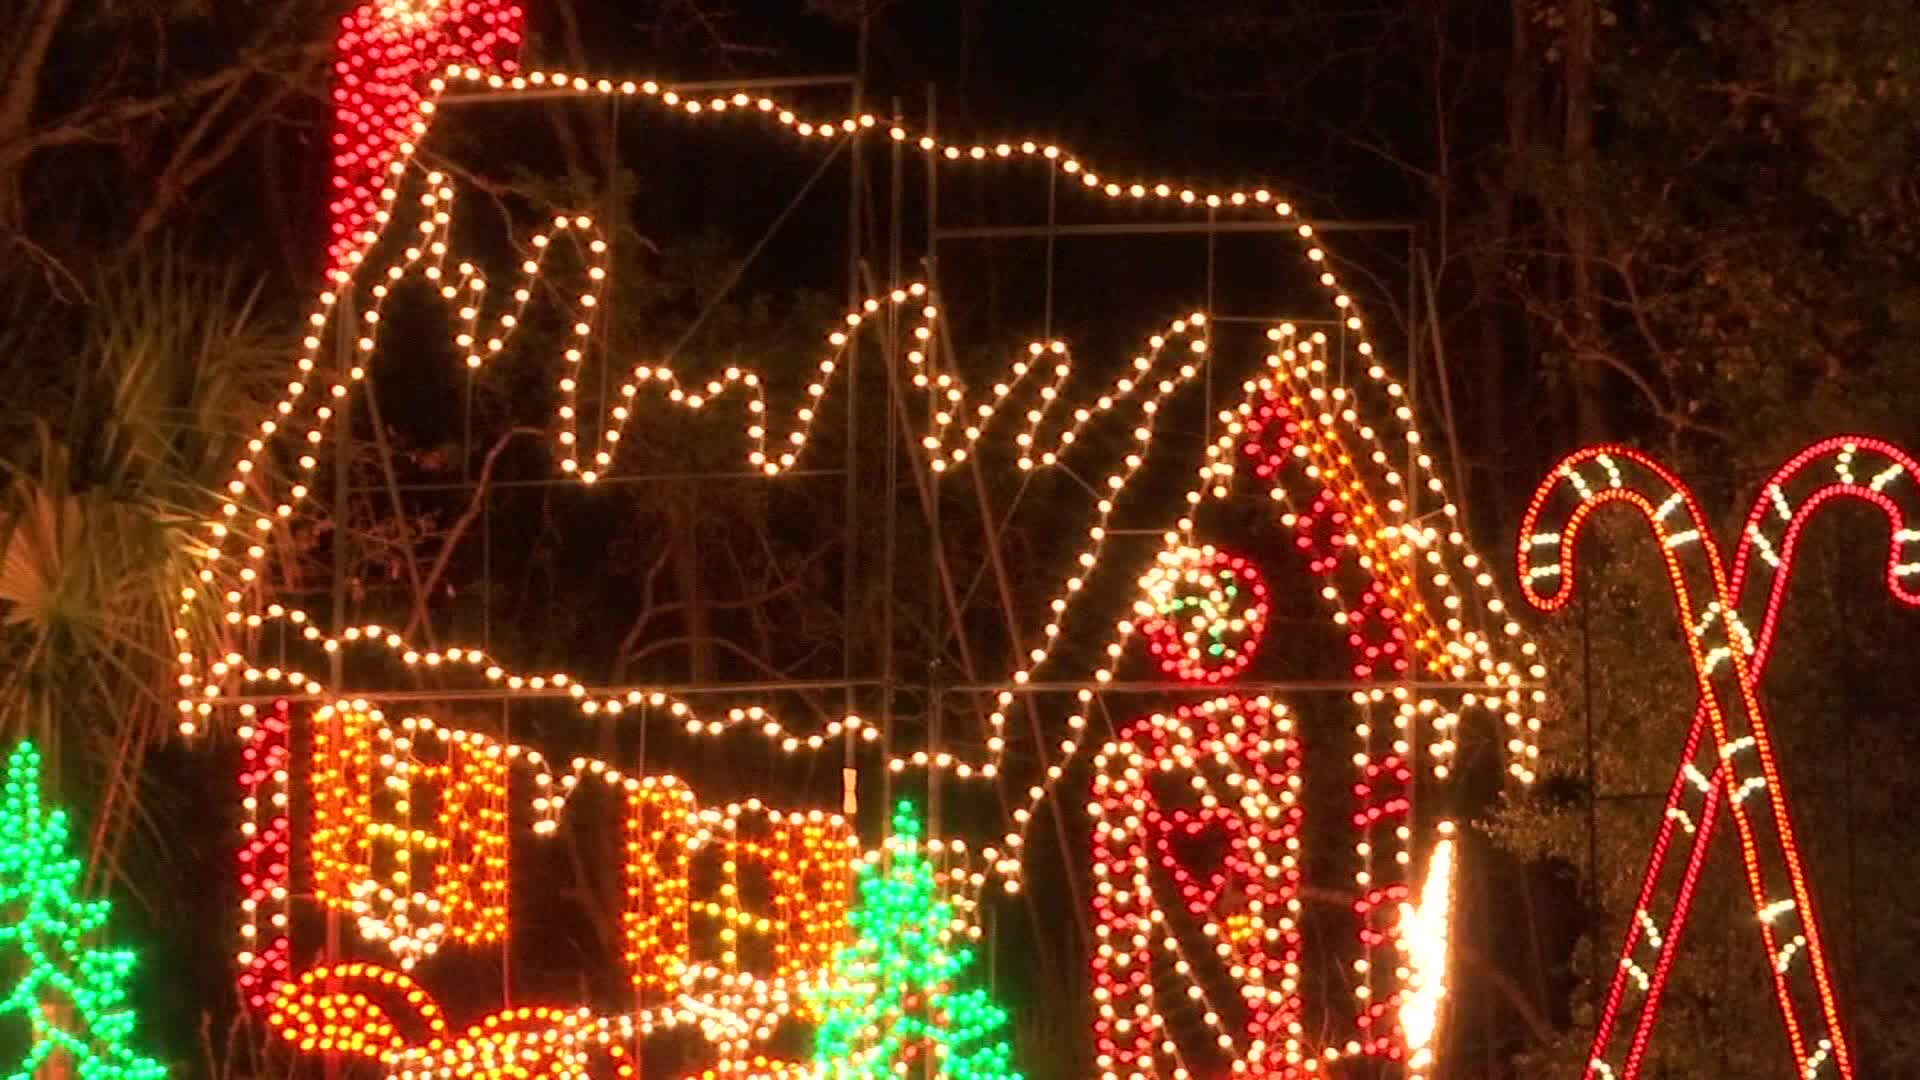 James Island Christmas Lights 2019.The Holiday Festival Of Lights Opens In One Month Wcbd News 2